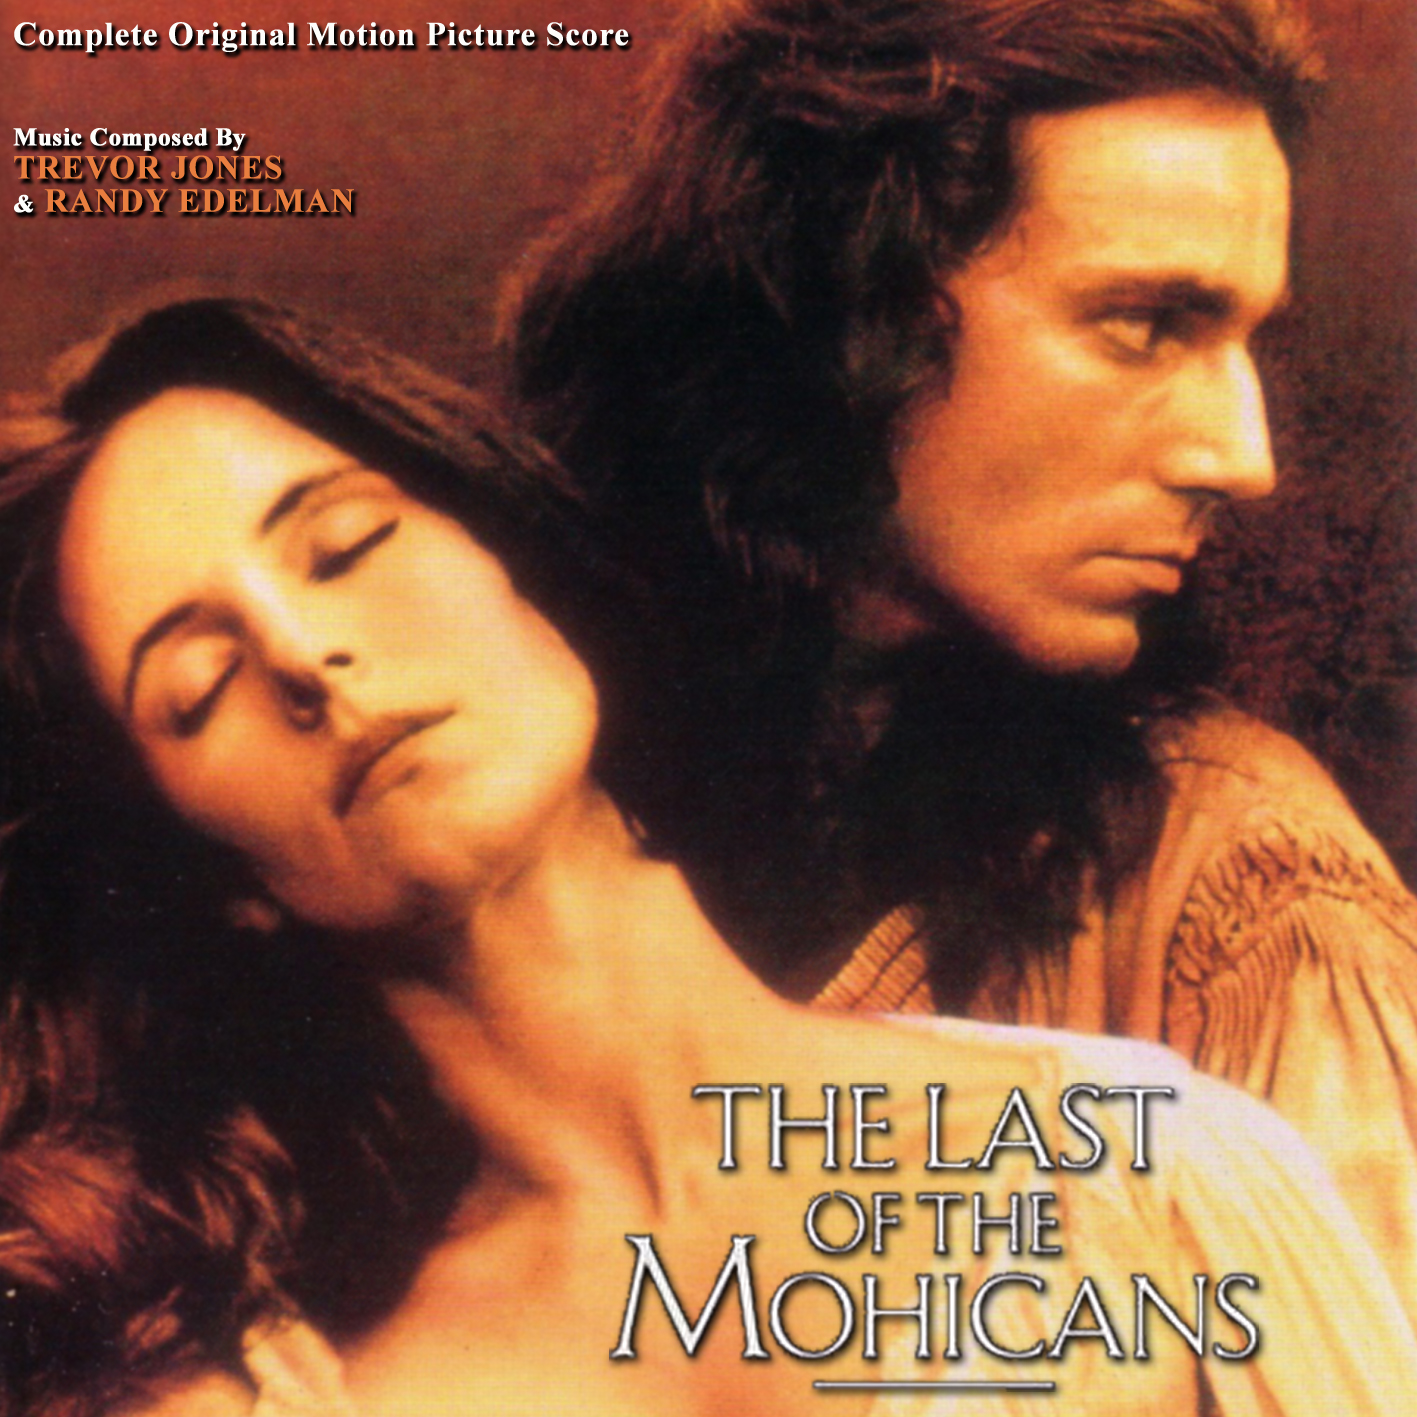 the last of the mohicans essay about the movie Read this full essay on the last of the mohicans as a mixture of genres  the  movie is based on 'the french and indian war' also known as 'the 7 year war.